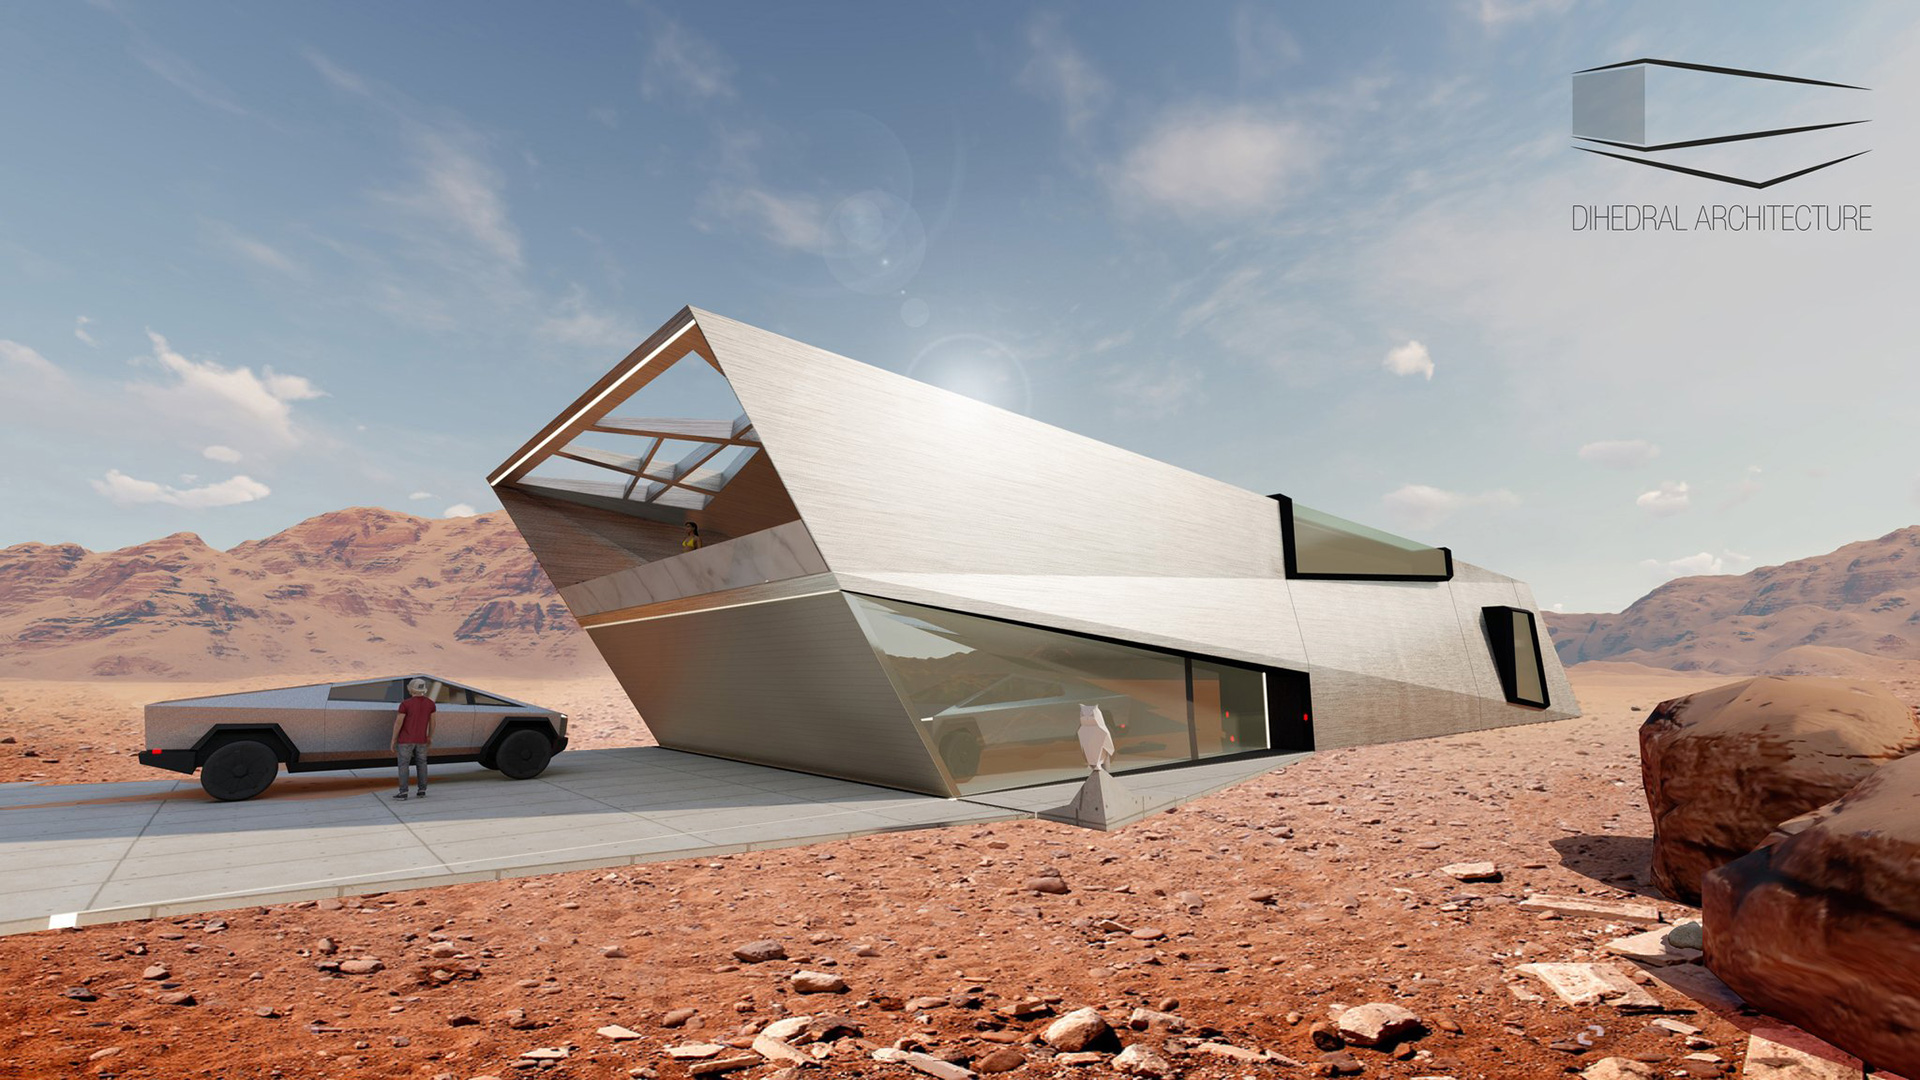 Cyberhaus designed by Dihedral architecture, with sharp angles unlike conventional homes | Cybunker |Lars Büro | STIRworld